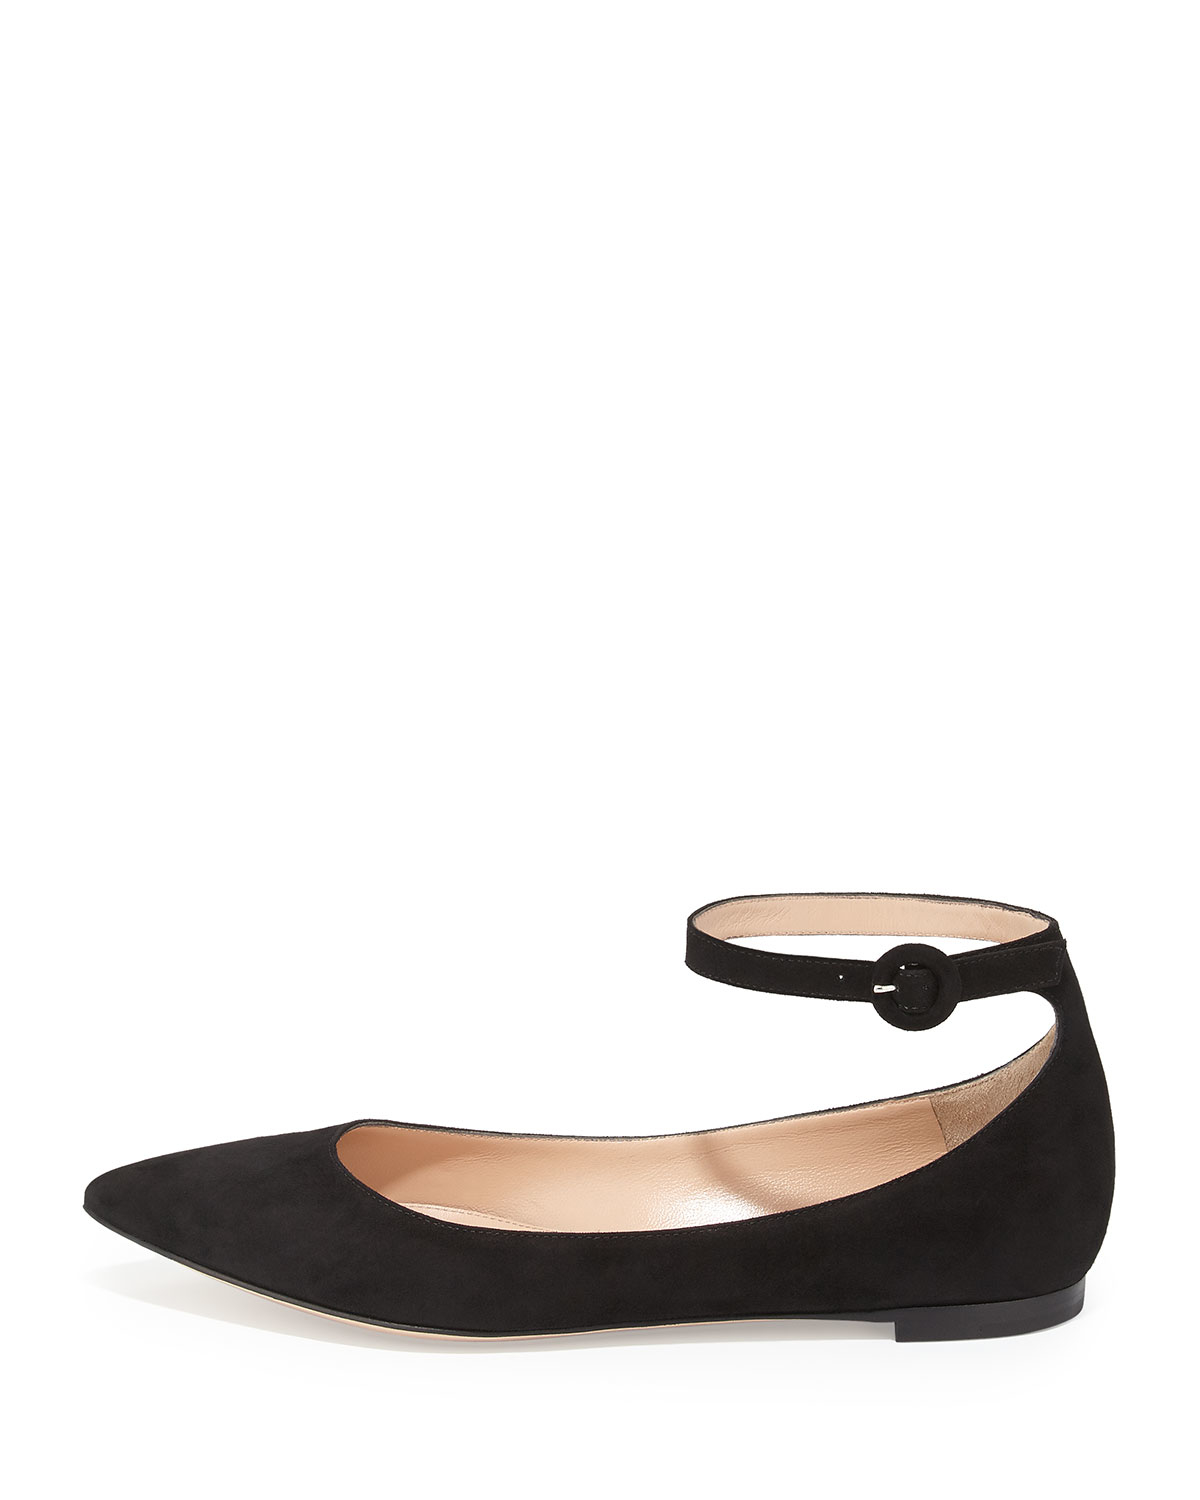 0820be5d4494 Lyst - Gianvito Rossi Suede Ankle-wrap Skimmer Flat in Black